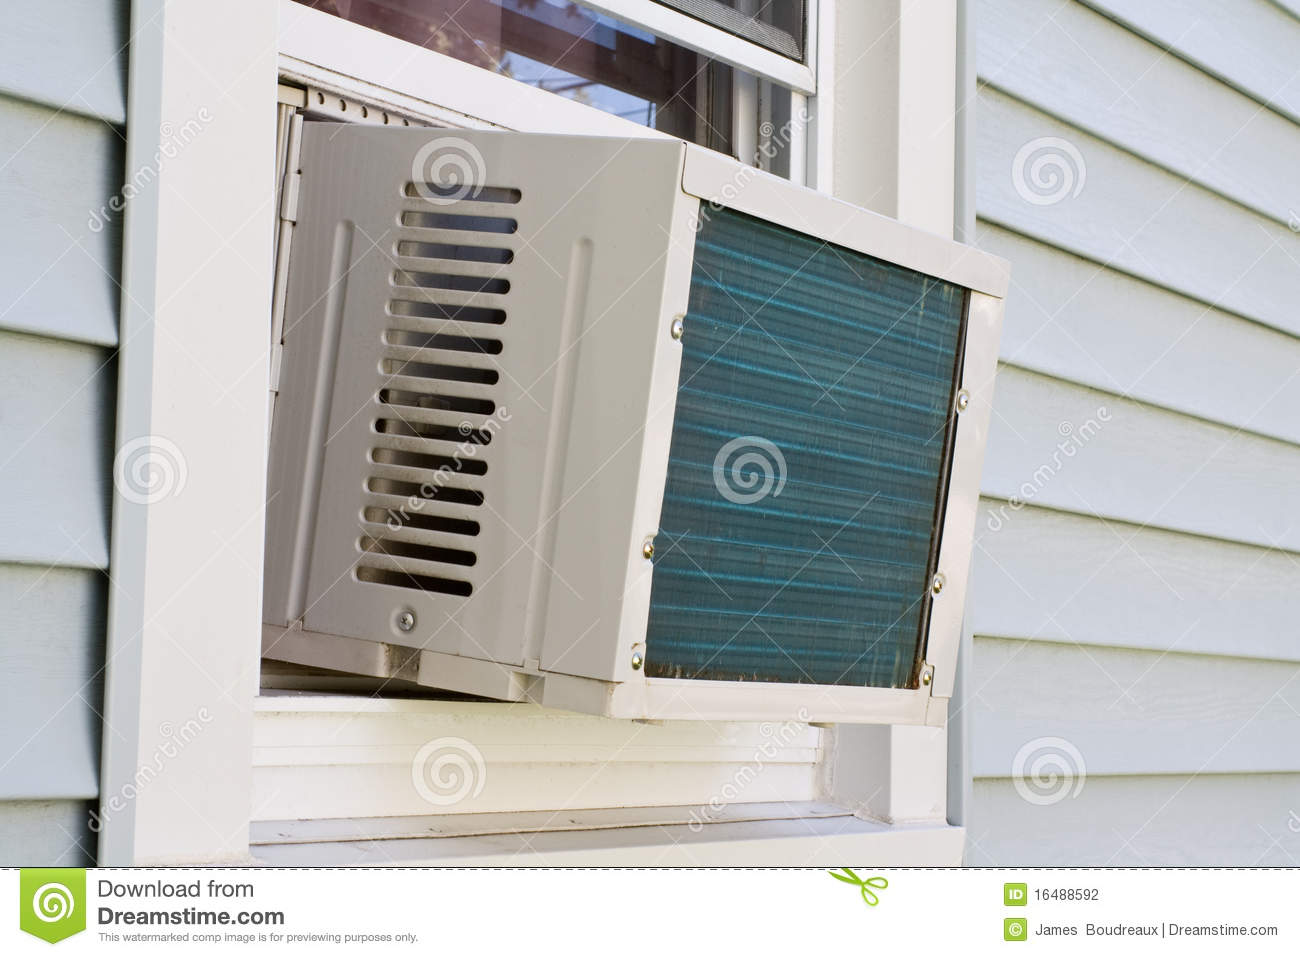 window mounted air conditioner unit sits in a residential window. #82A229